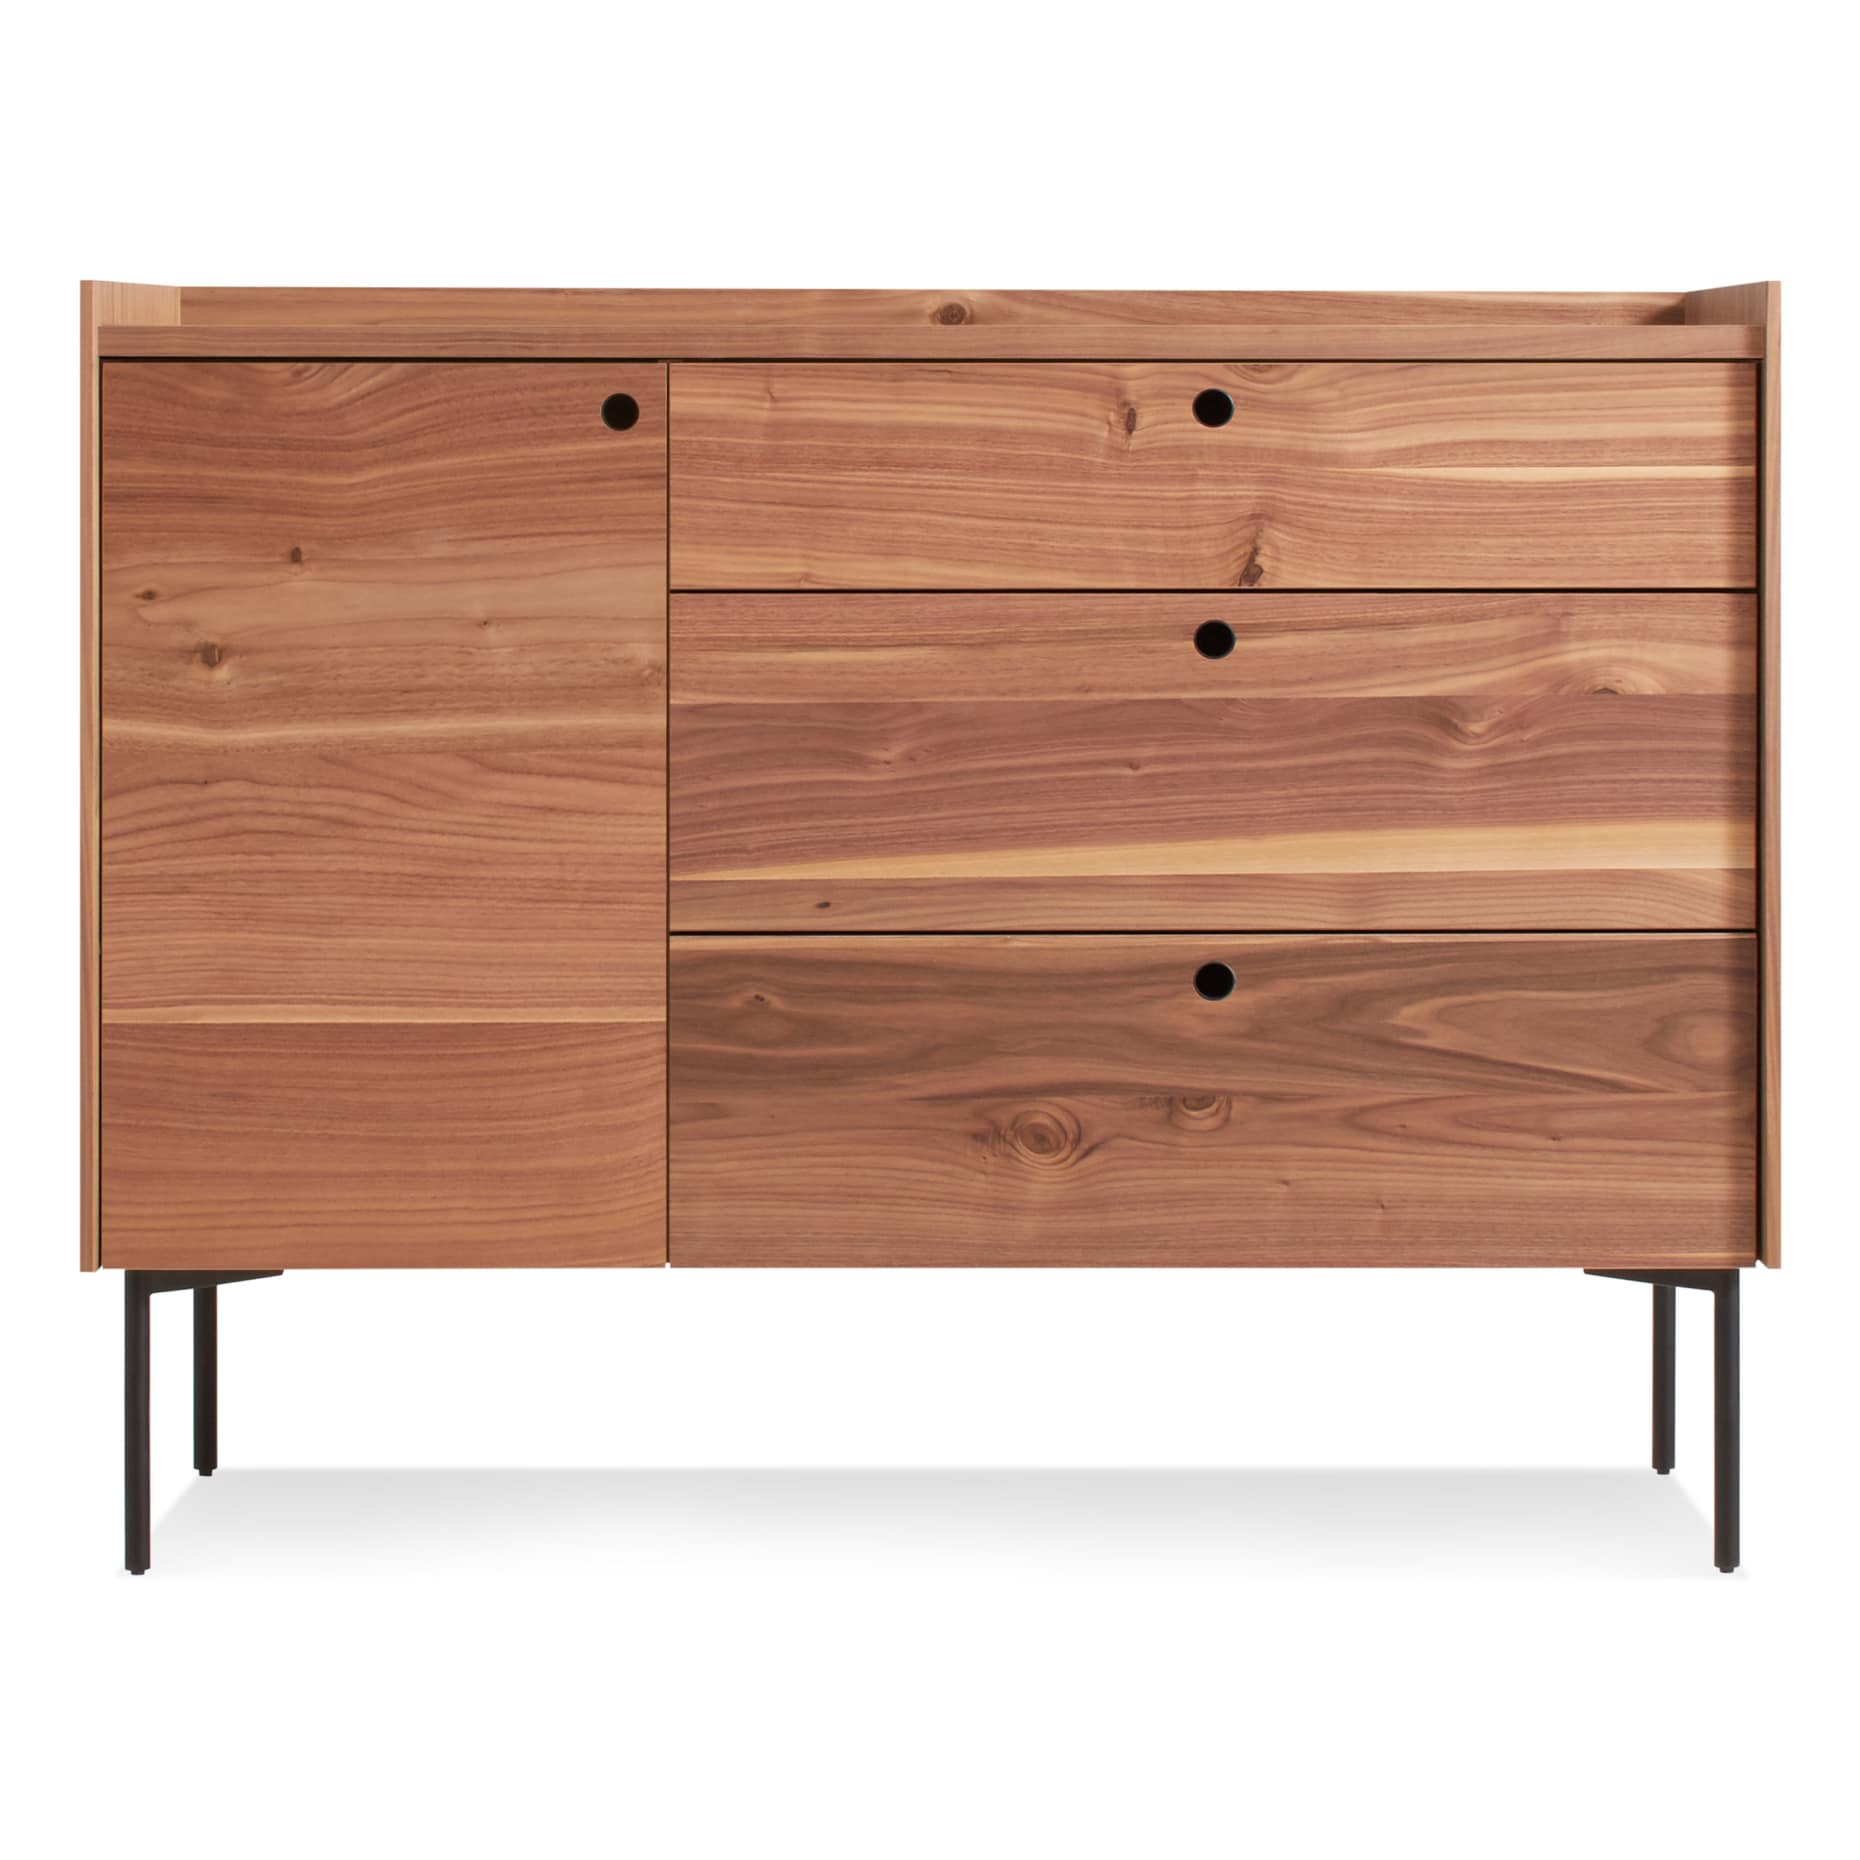 ek1 1d3drw wl peek 1 door 3 drawer credenza rustic walnut